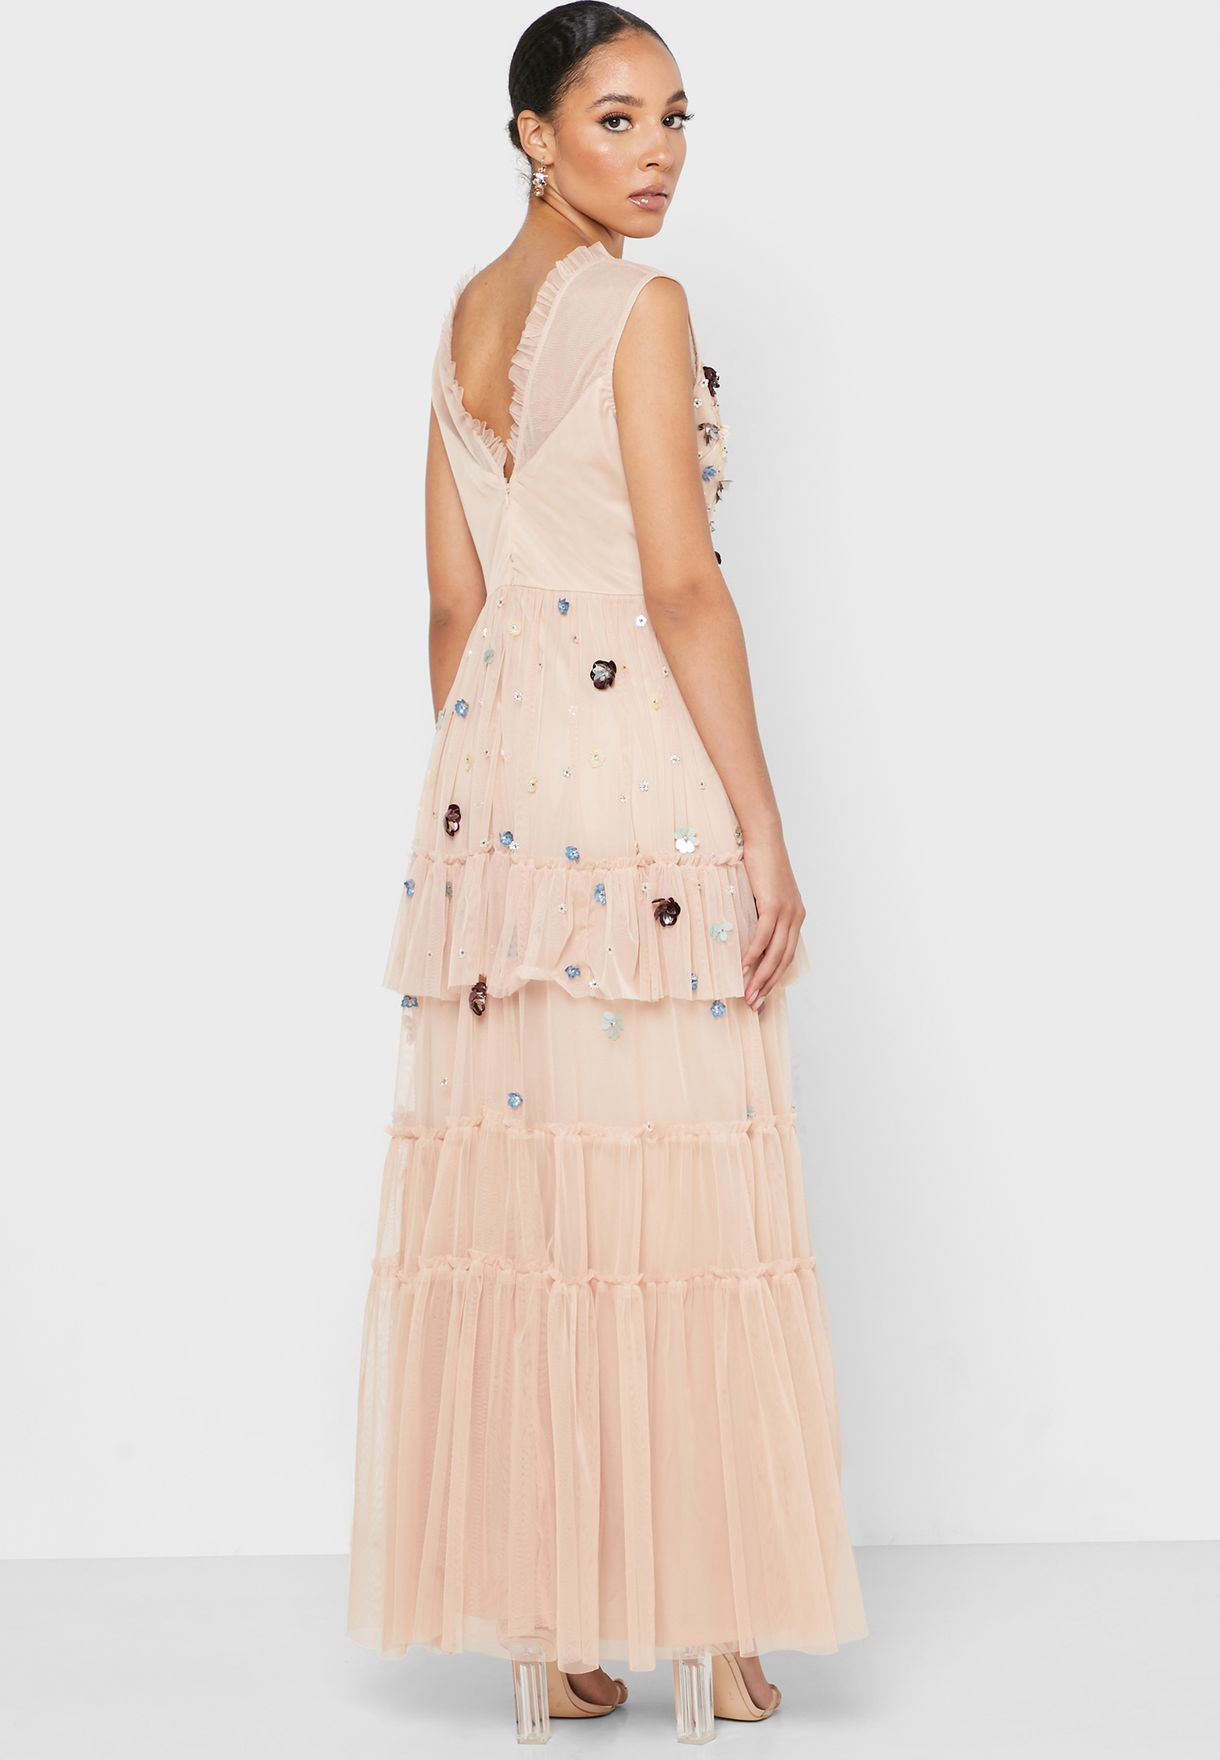 Embellished Detail Pleated Dress